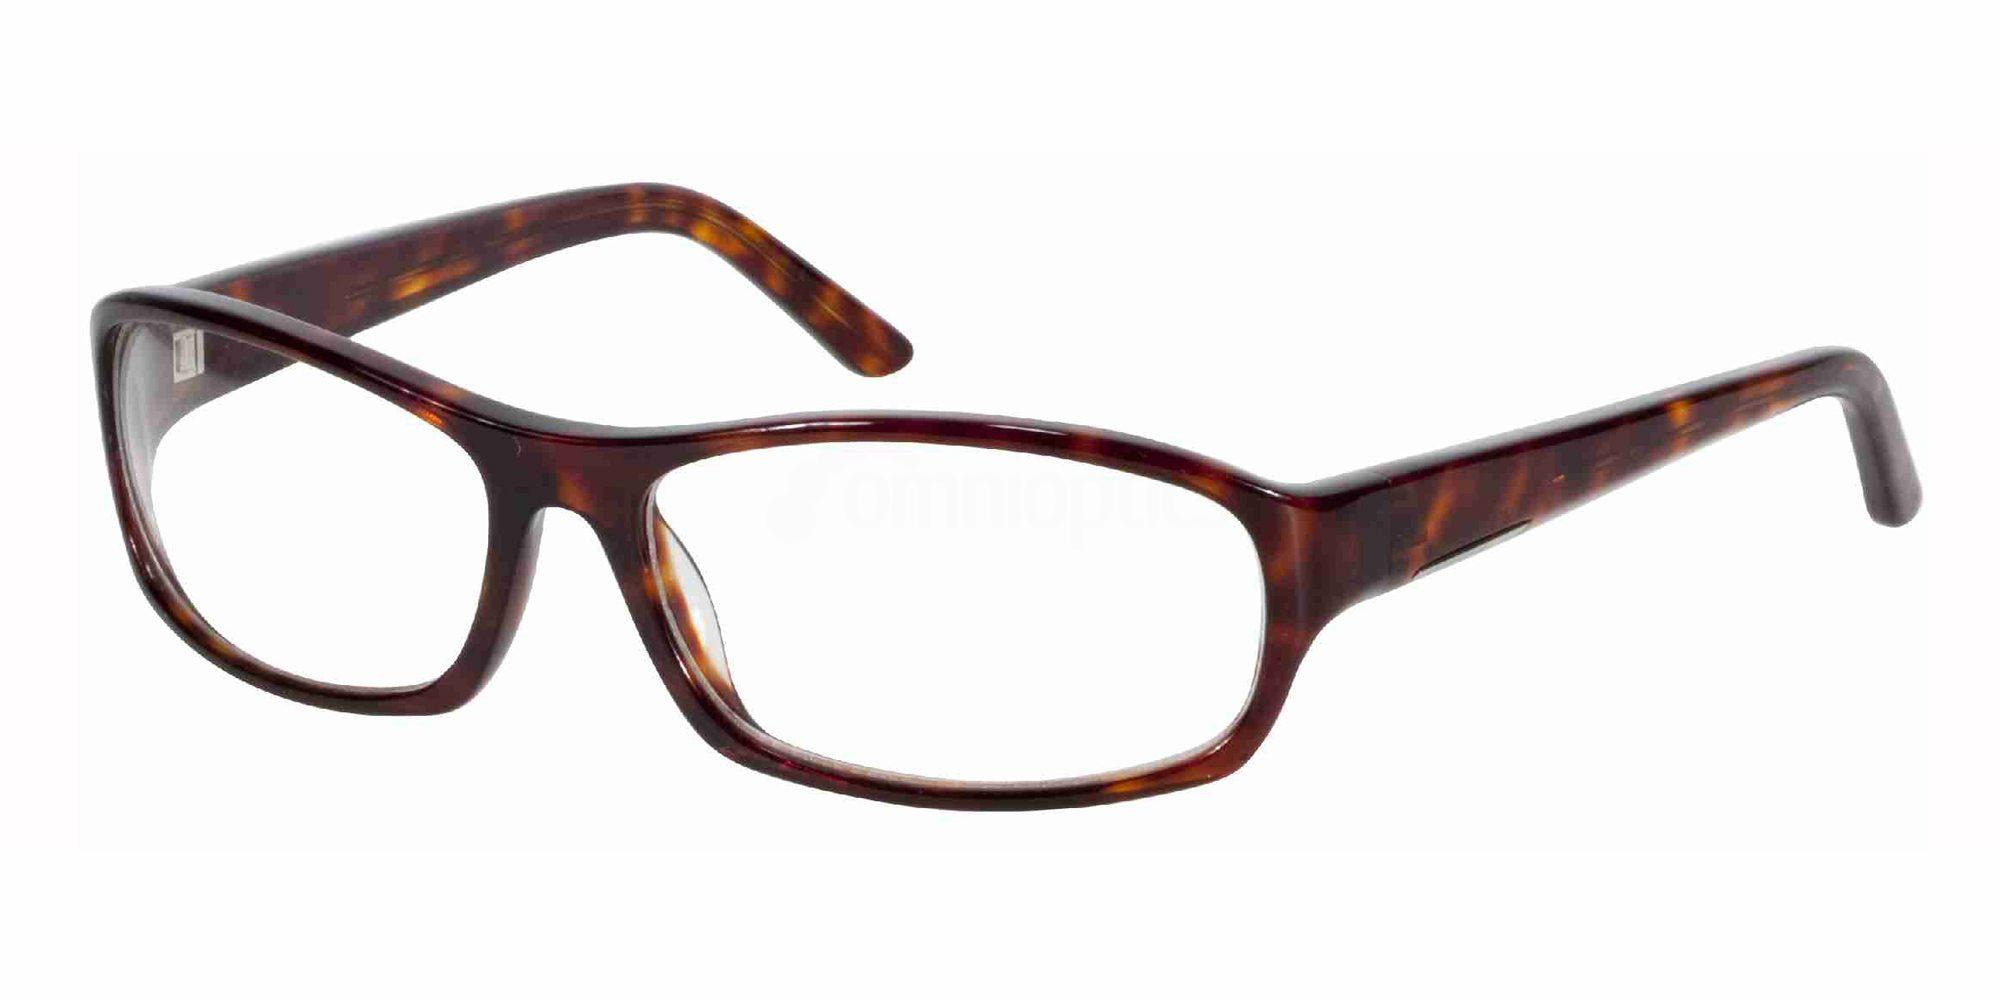 8651 31007 Glasses, JAGUAR Eyewear